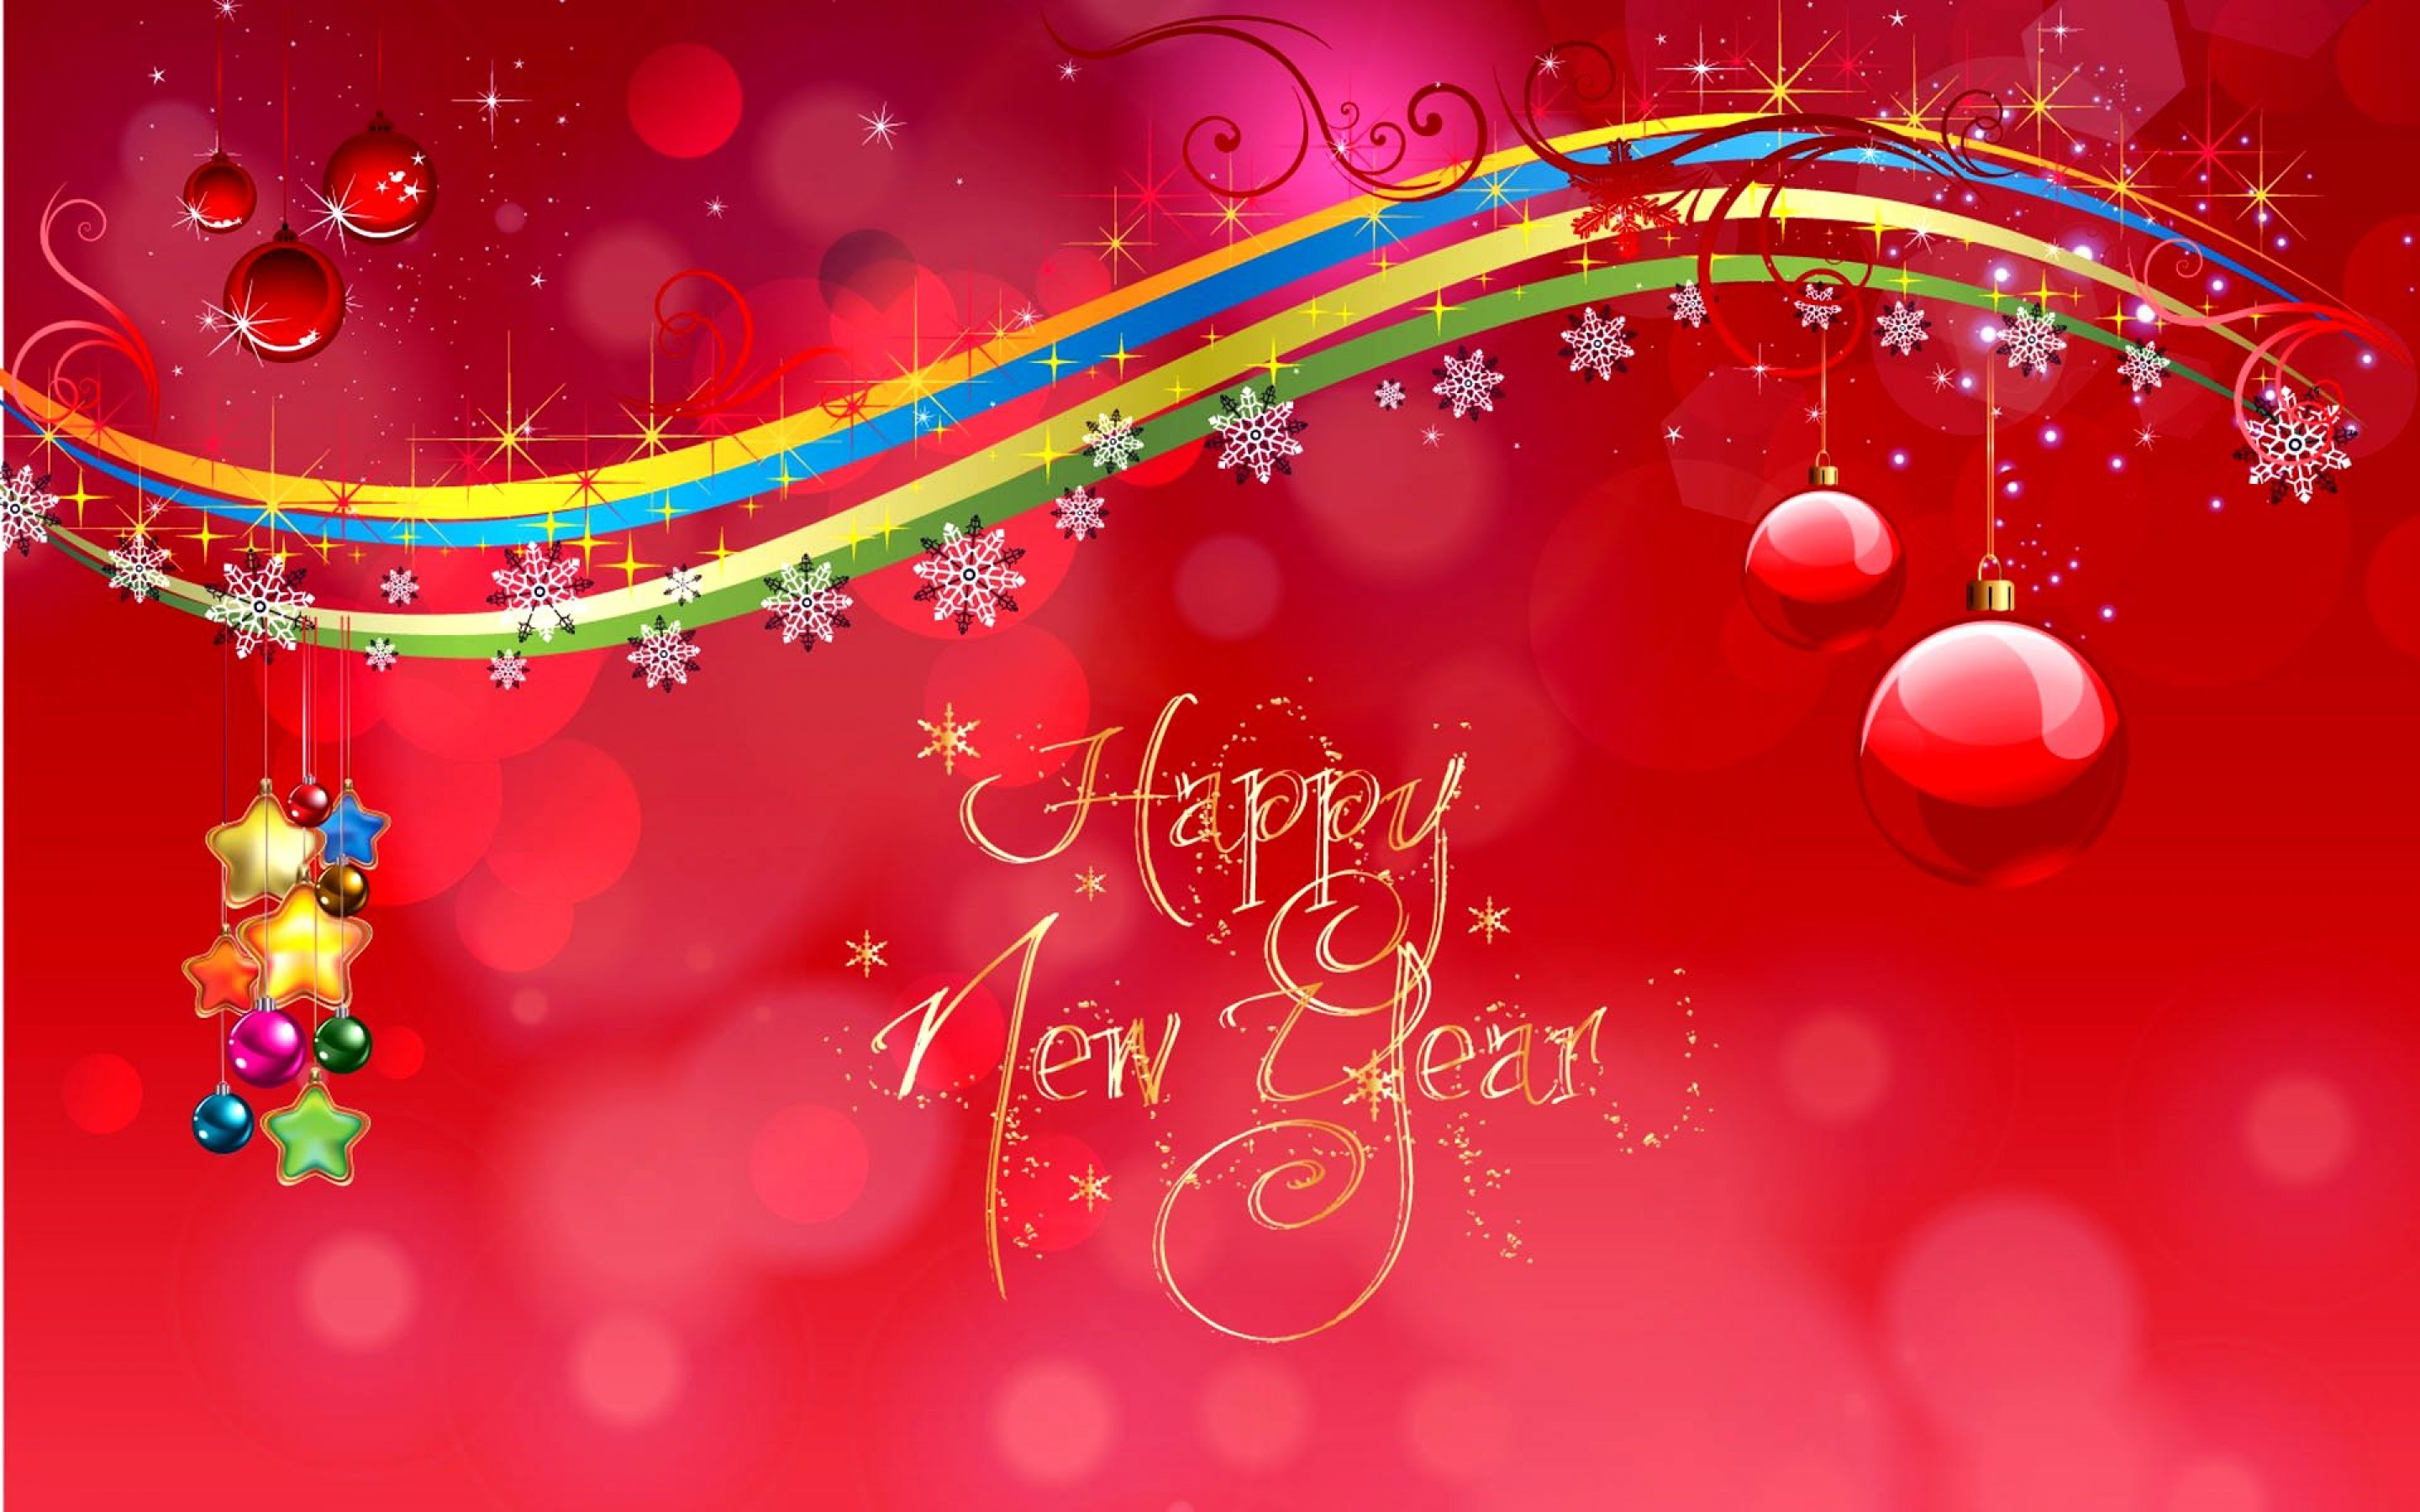 Happy new year greetings wishes hd wallpaper pc background kristyandbryce Gallery